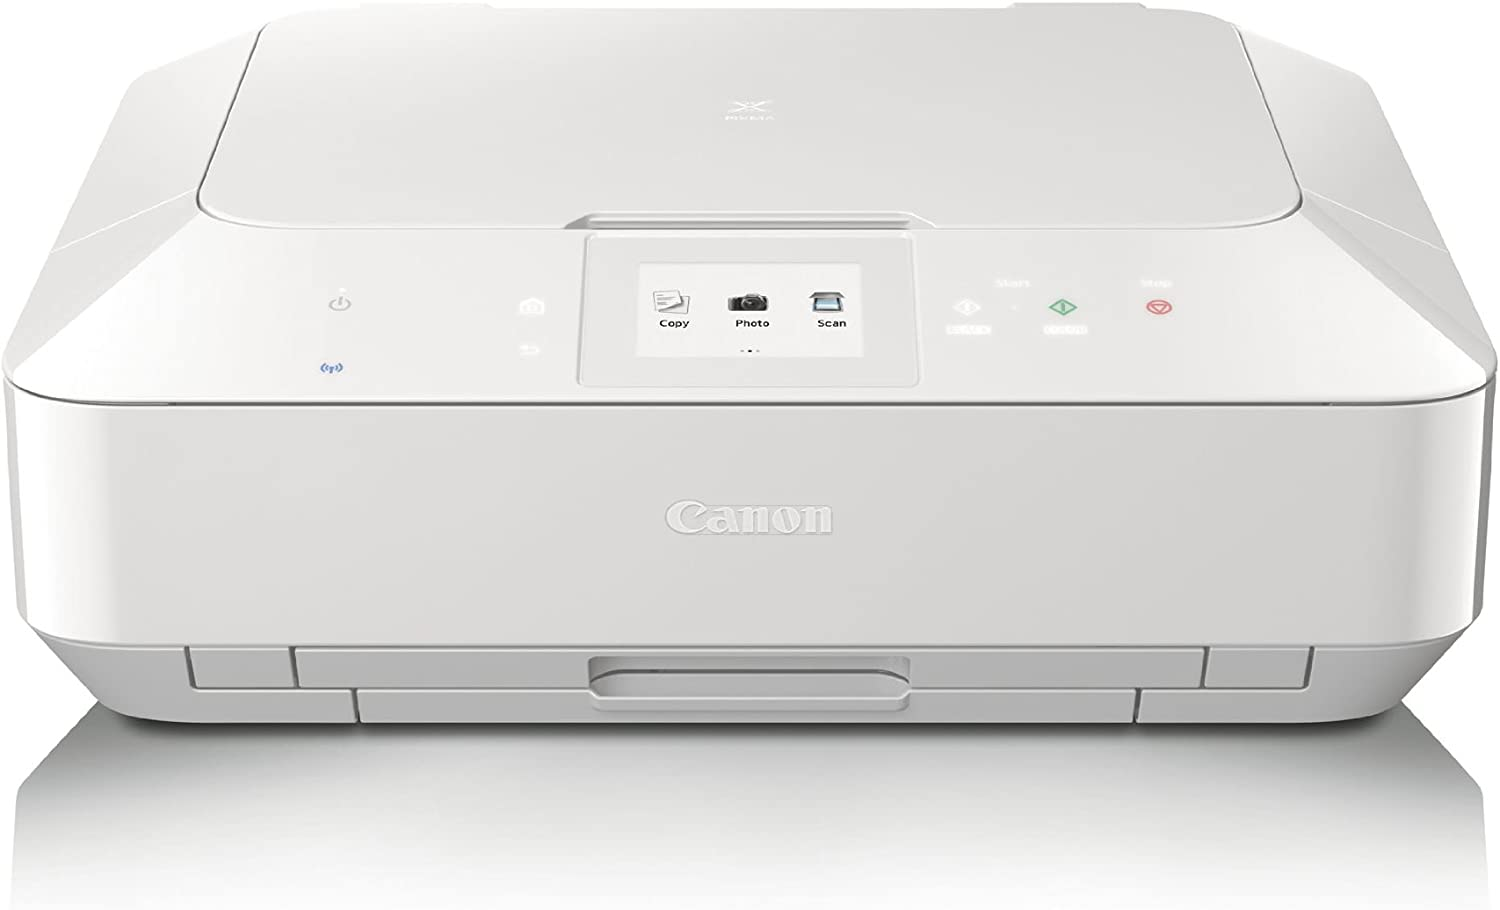 Canon PIXMA MG6320 Inkjet Multifunction Printer - Color - Photo/Disc Print - Desktop